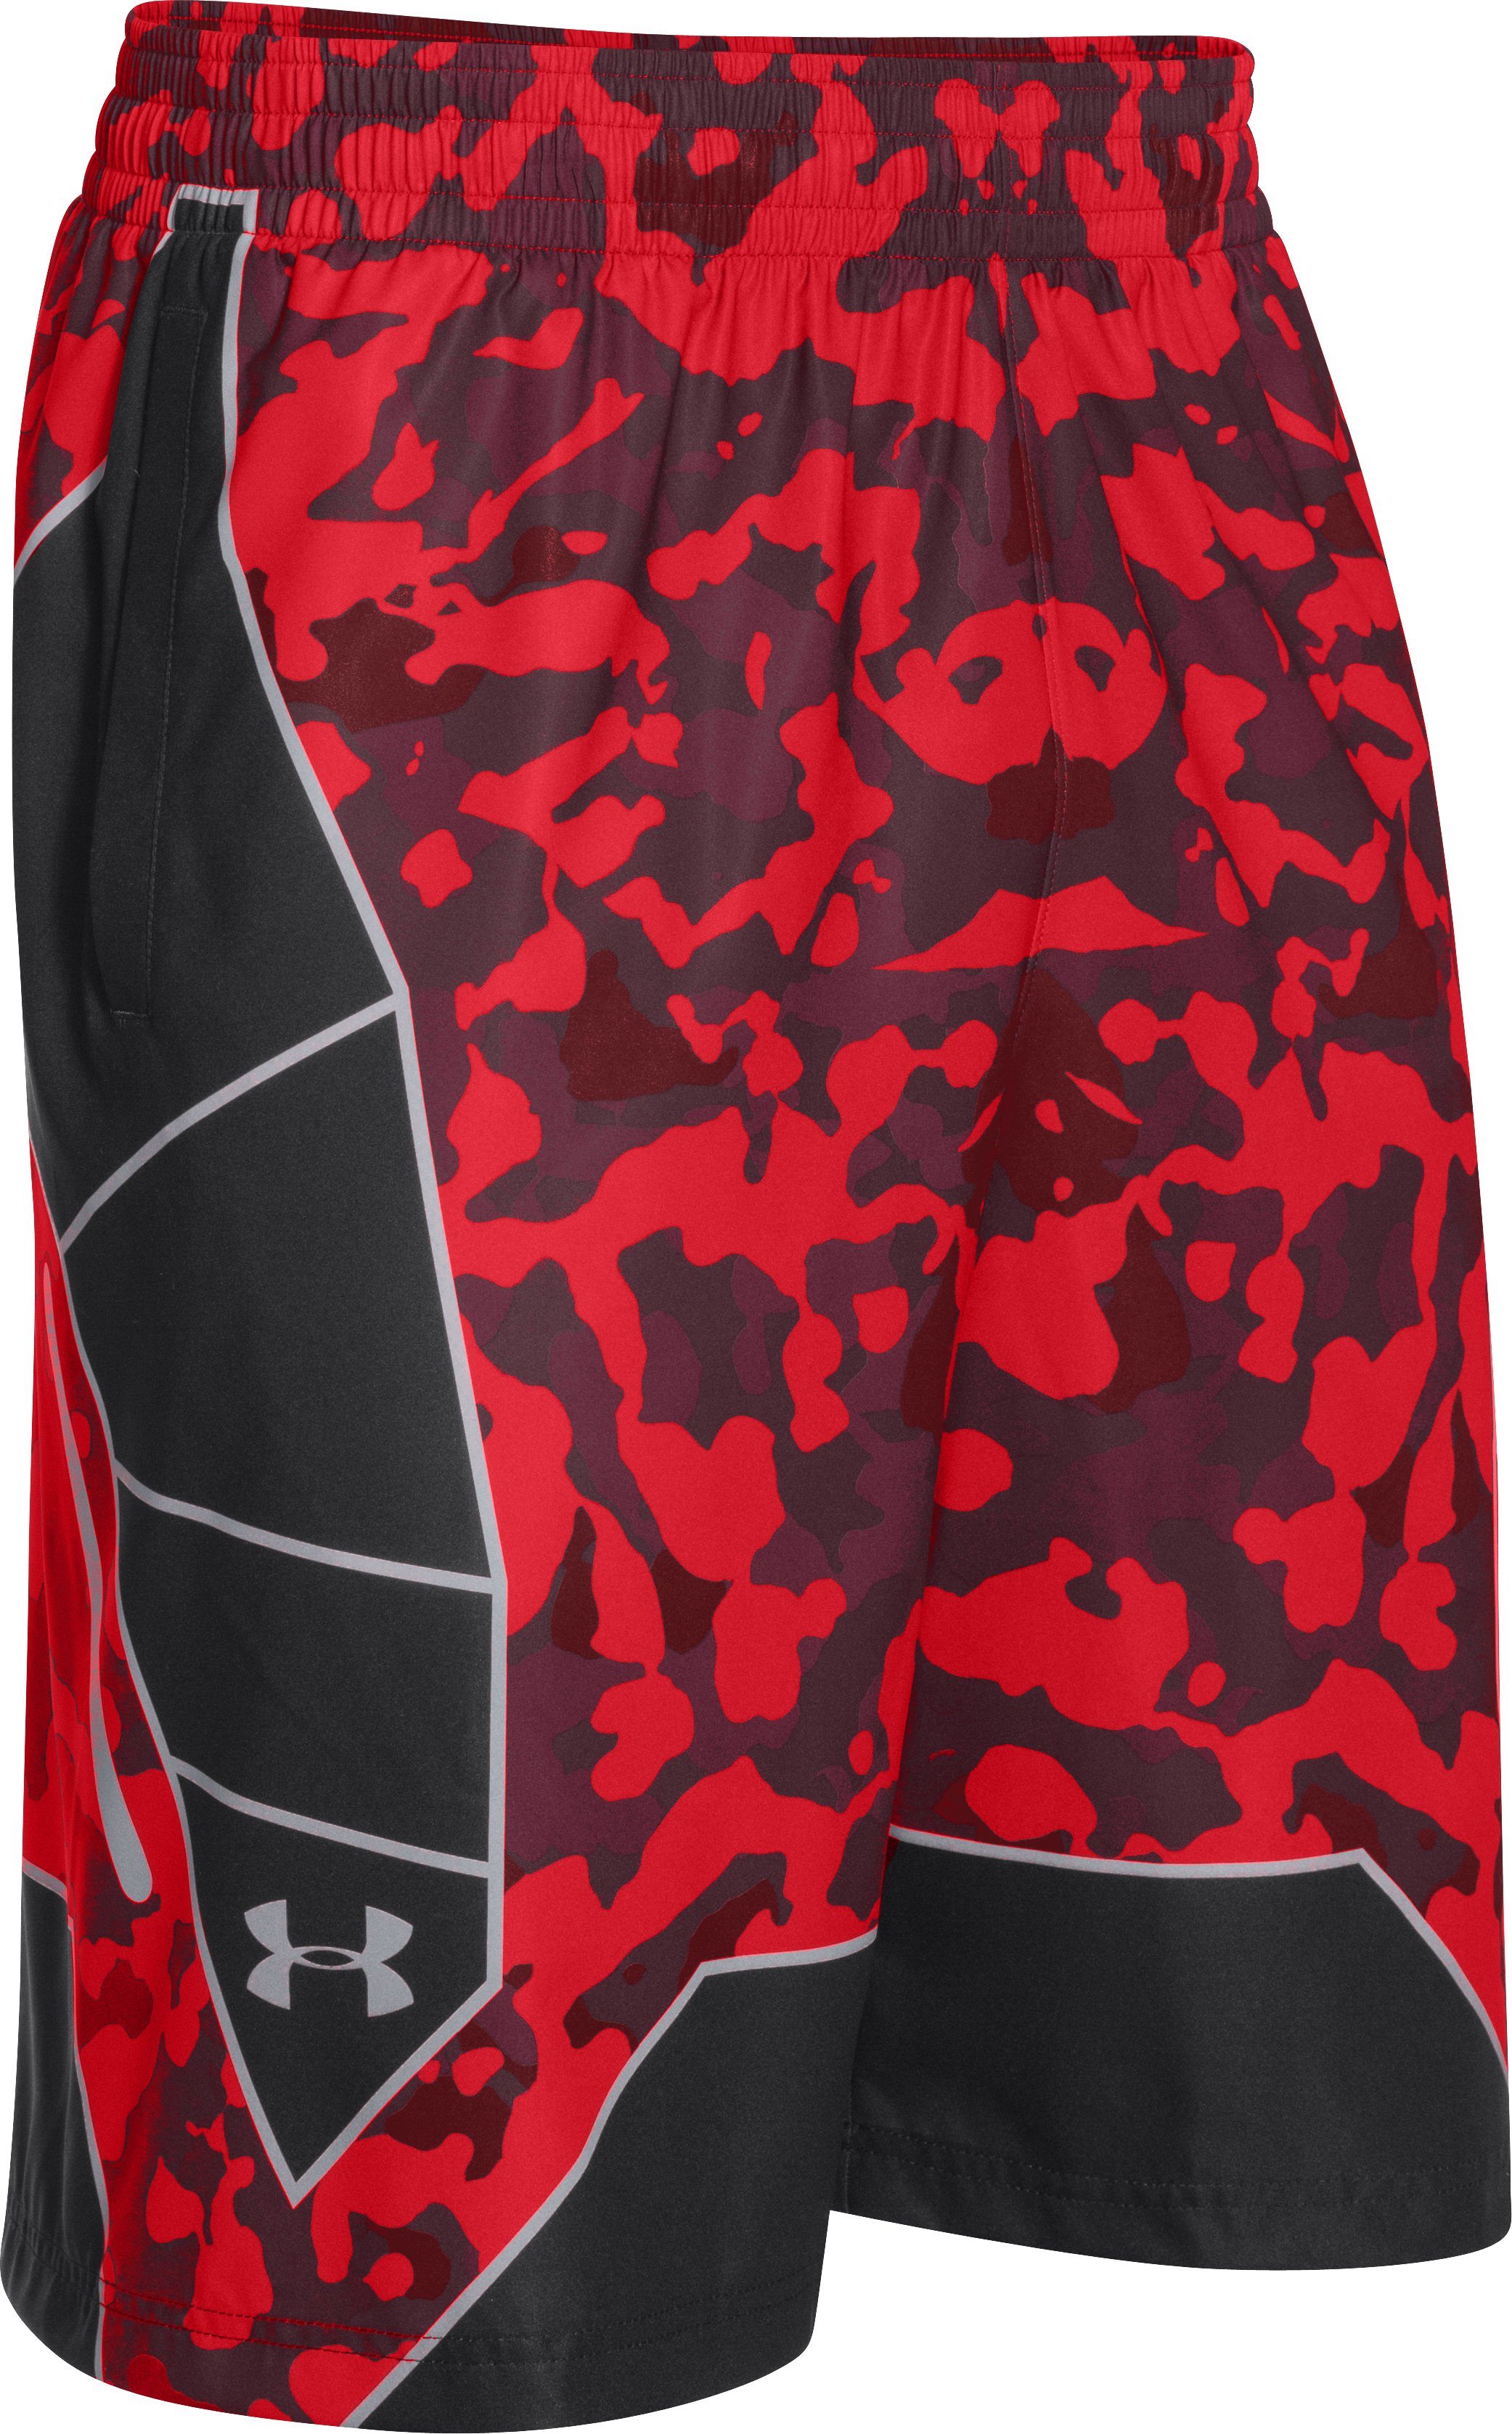 Men's UA Undeniable Playmaker Basketball Shorts, RISK RED, undefined